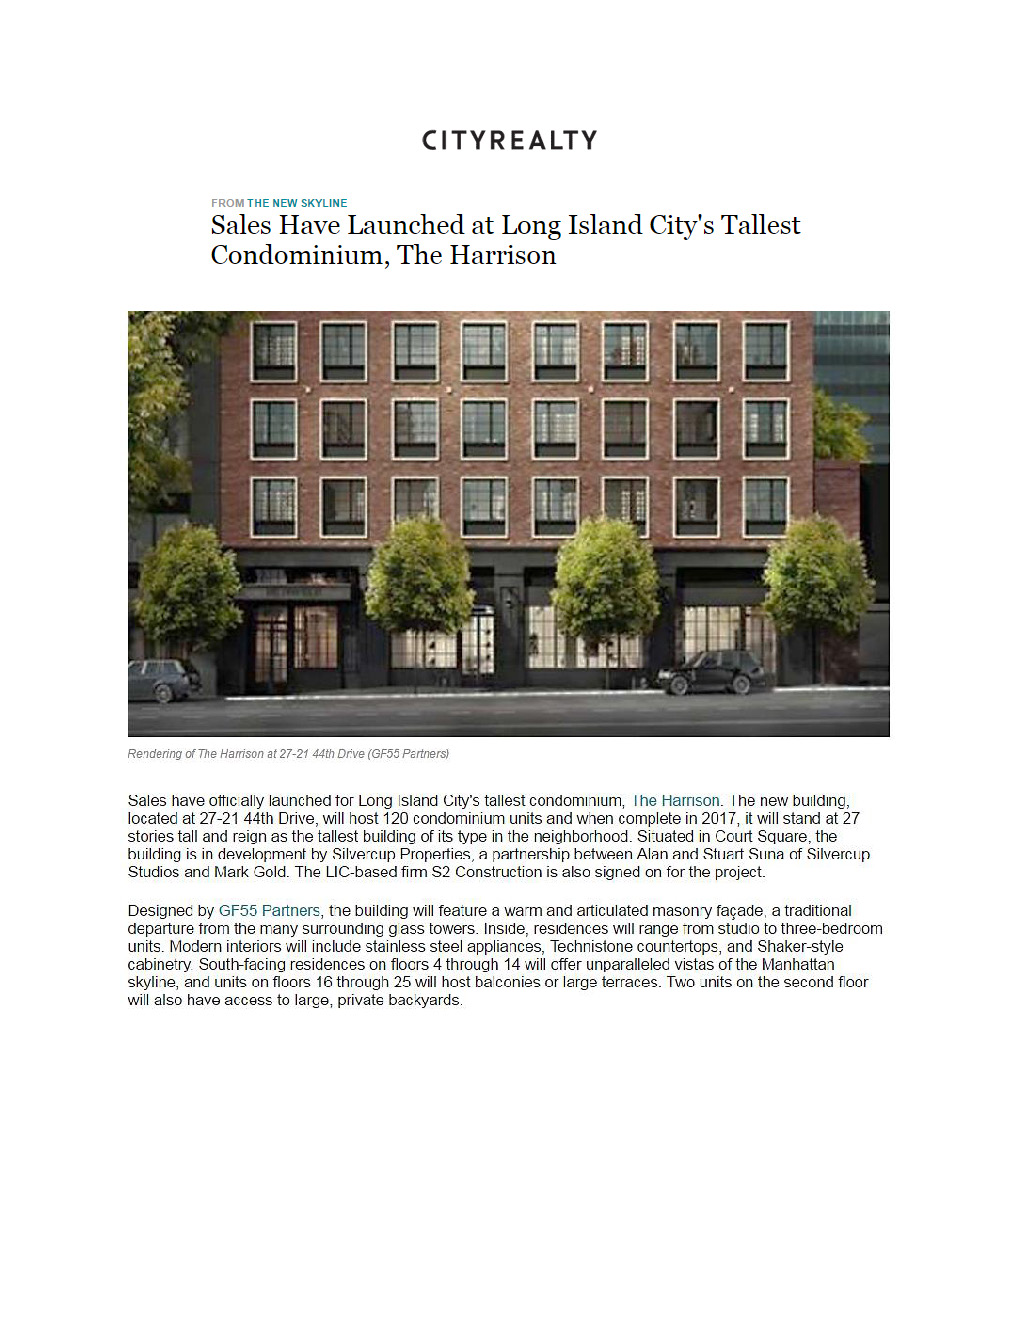 city-realty-sales-have-launched-at-long-island-citys-tallest-condominium-the-harrison-9-27-16-1_page_1